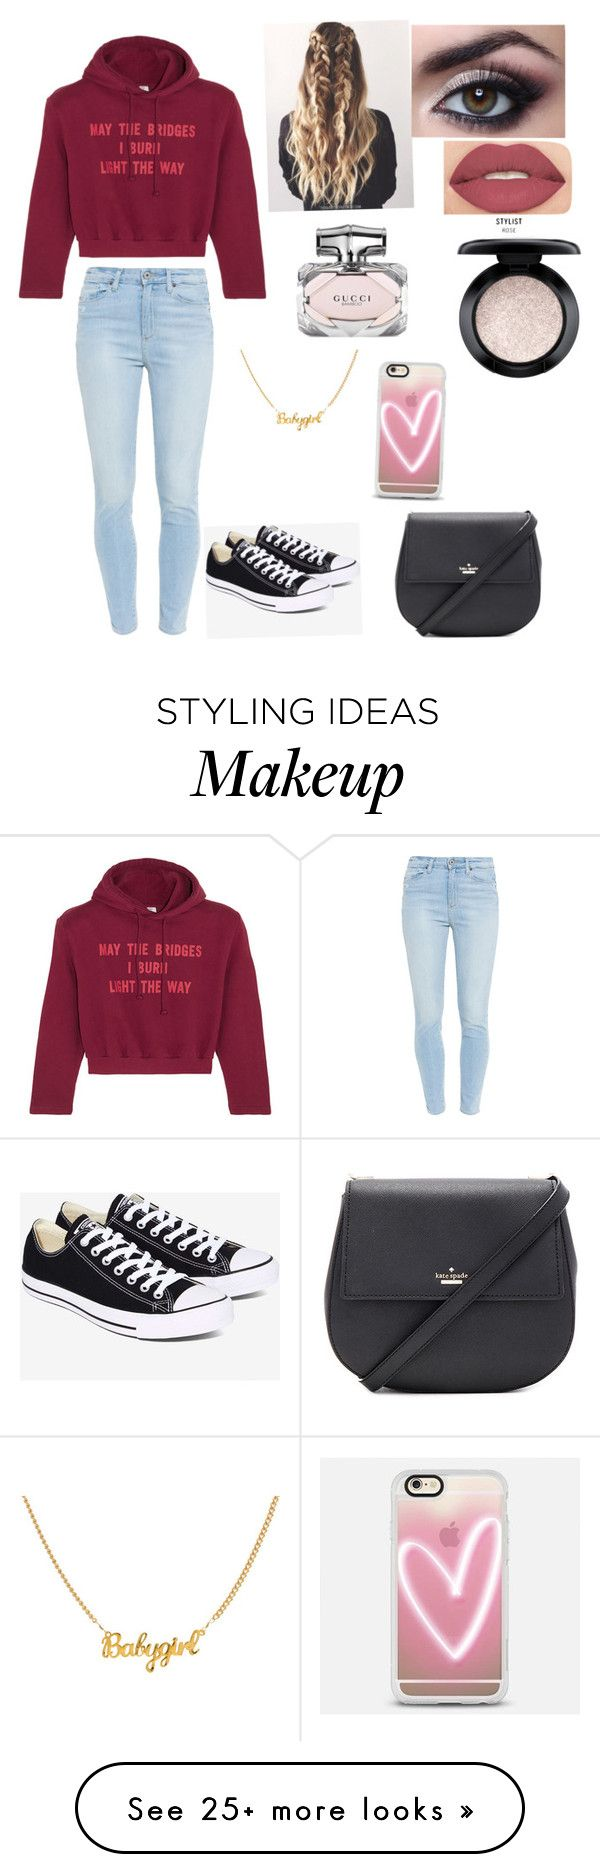 """""""Untitled #1"""" by sillssierra on Polyvore featuring Vetements, Paige Denim, Converse, Smashbox, MAC Cosmetics, Gucci, Casetify and Kate Spade"""